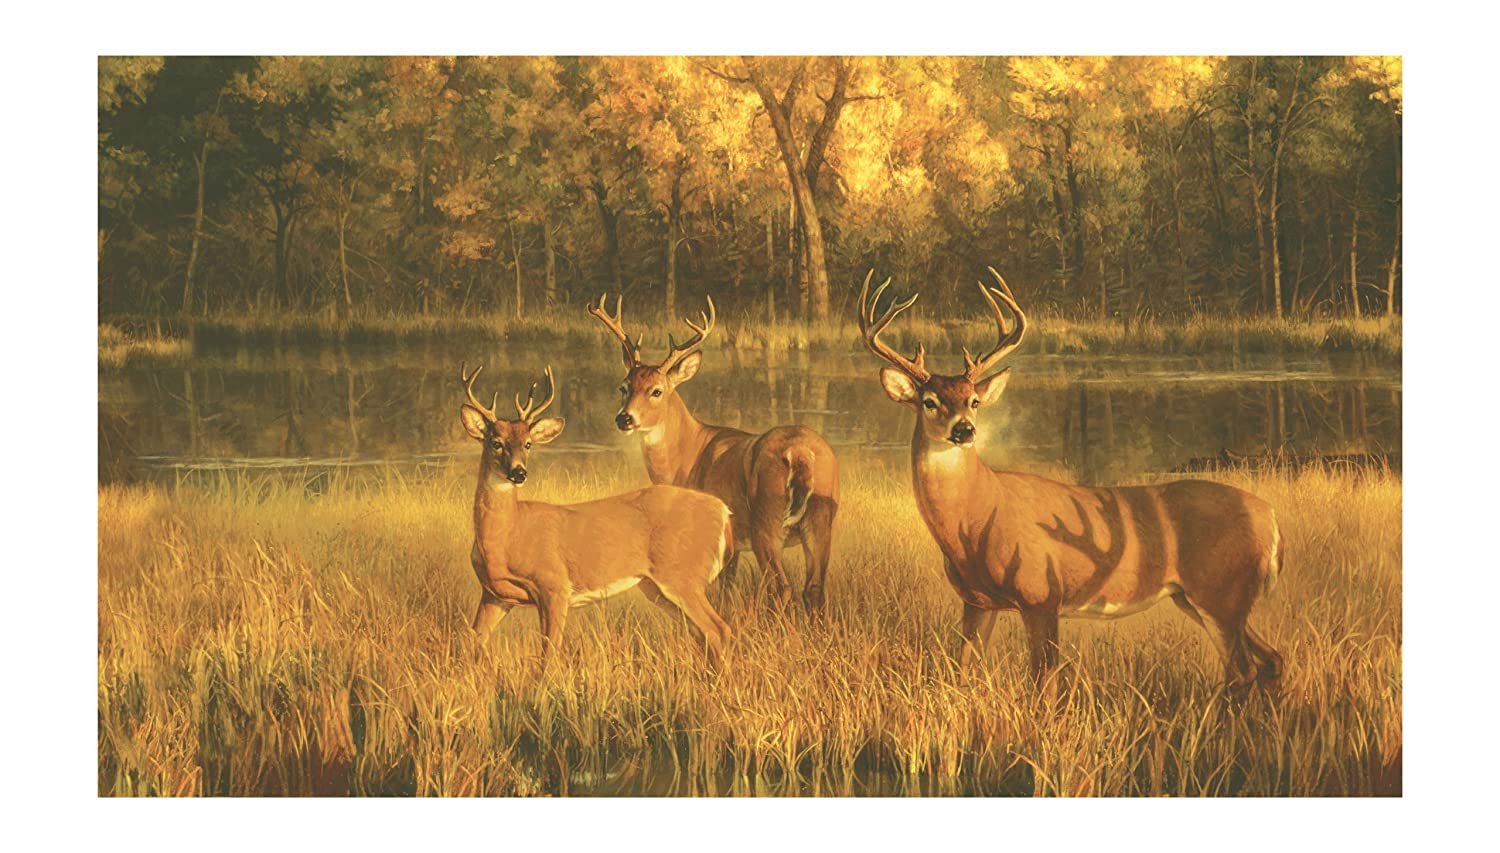 York Wallcoverings Lake Forest Lodge CH7984M White Tail Lake Mural, Browns by York Wallcoverings  B001RDXNN0